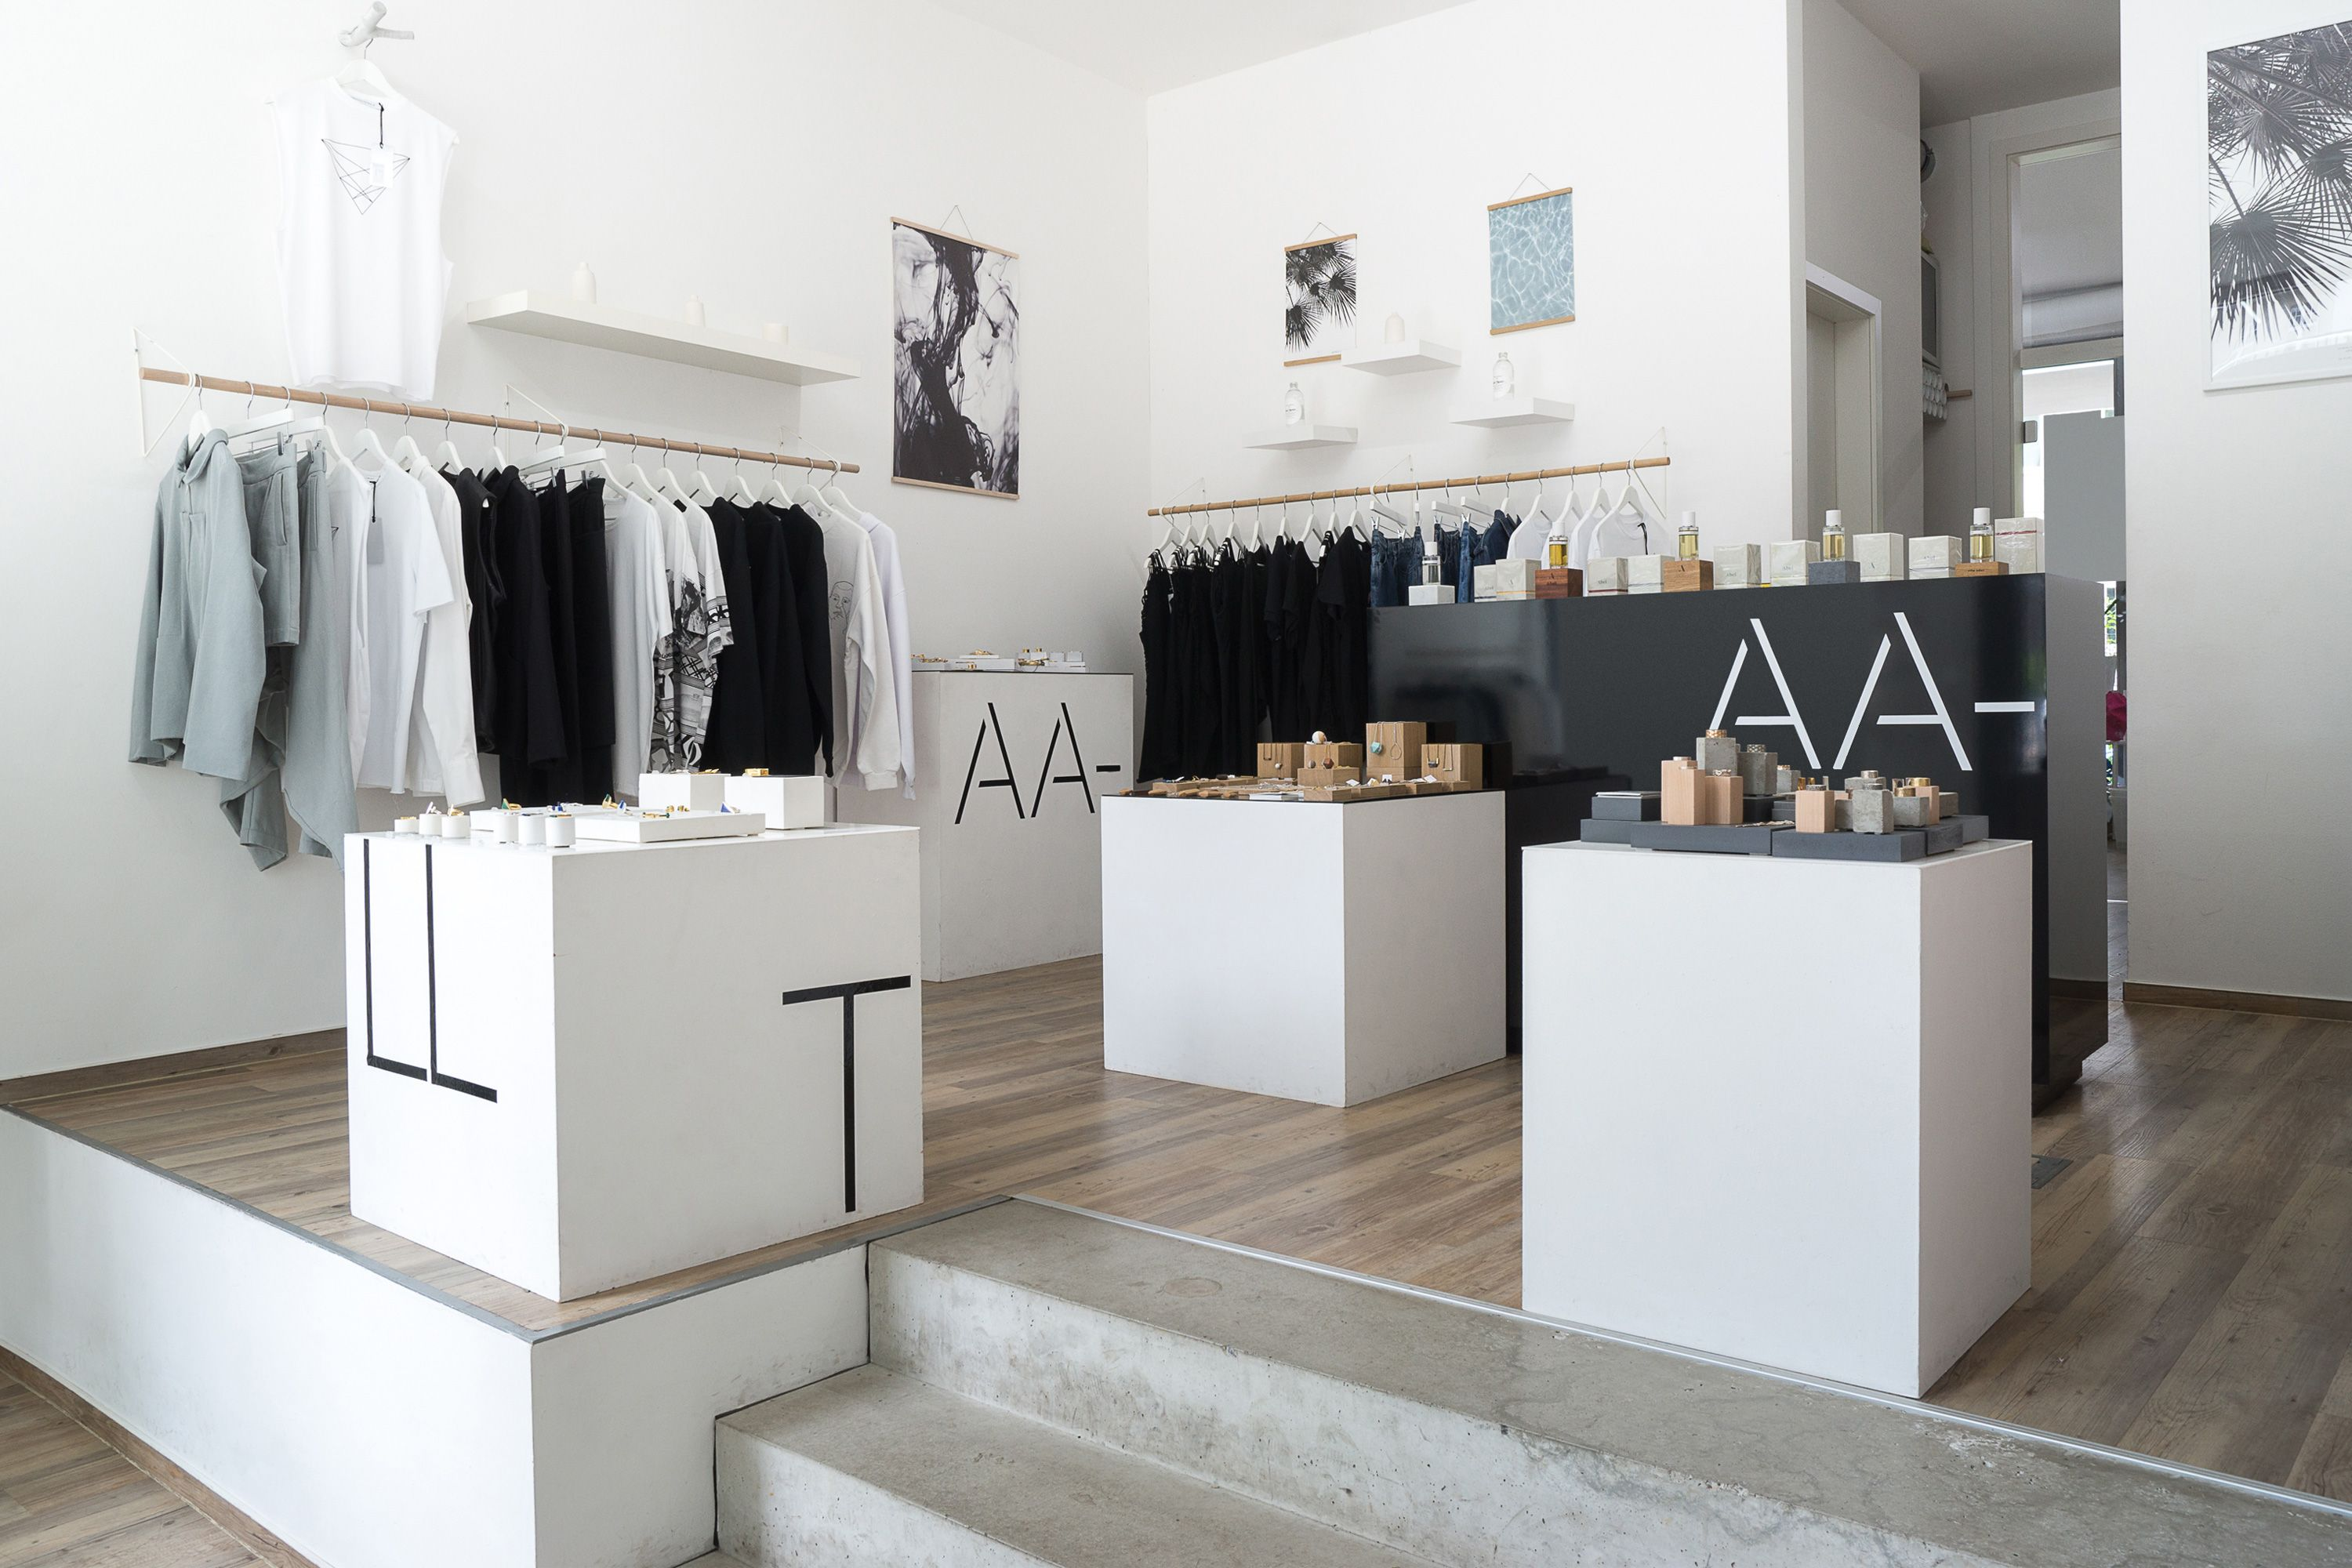 DITTMAR_aa-collected-shop